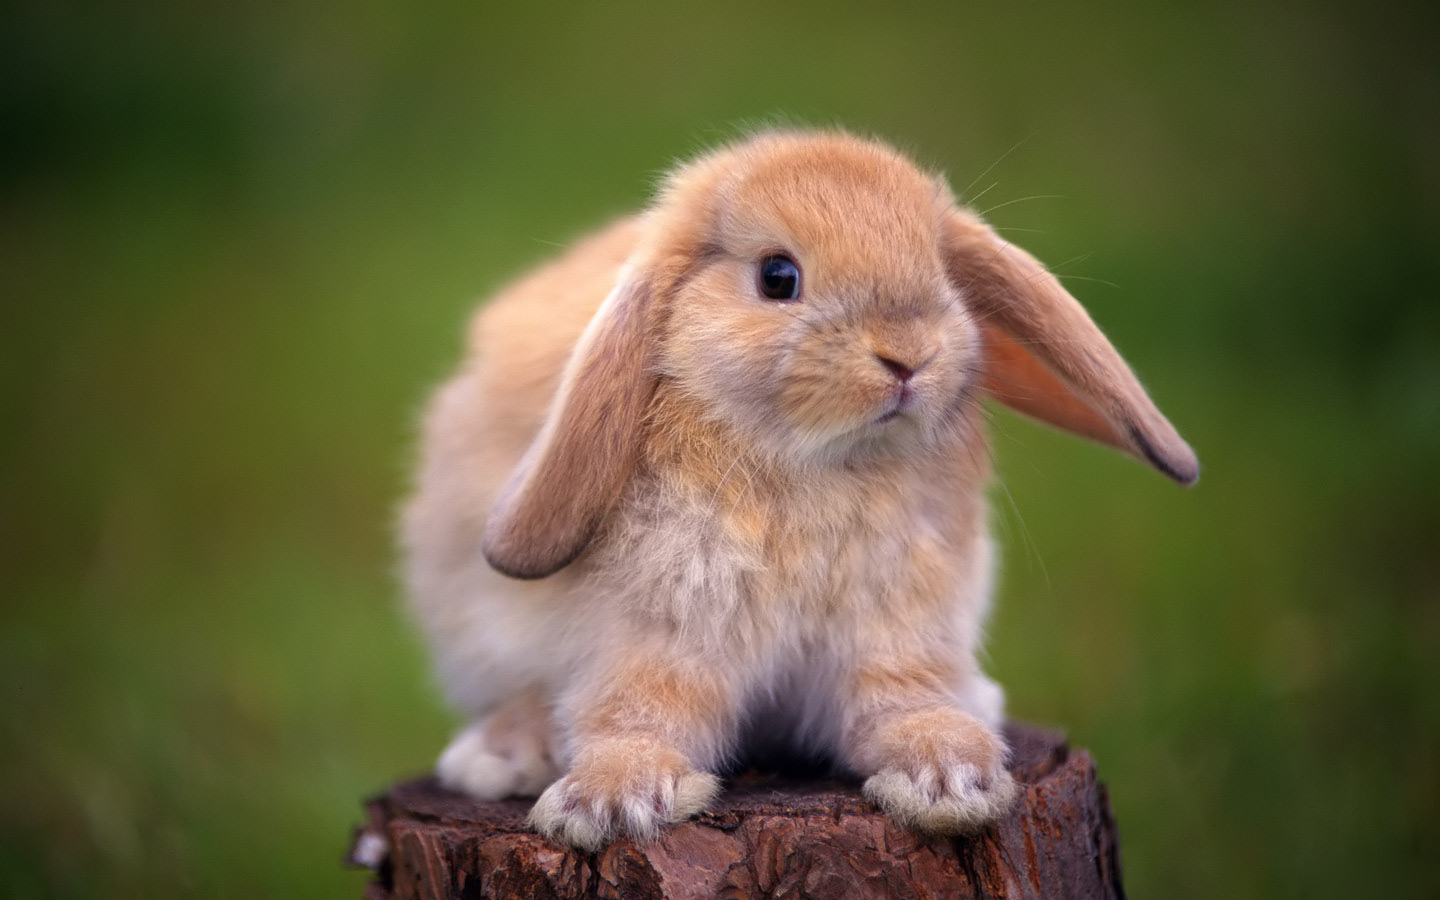 cute rabbit hd images widescreen desktop rabbit wallpapers background